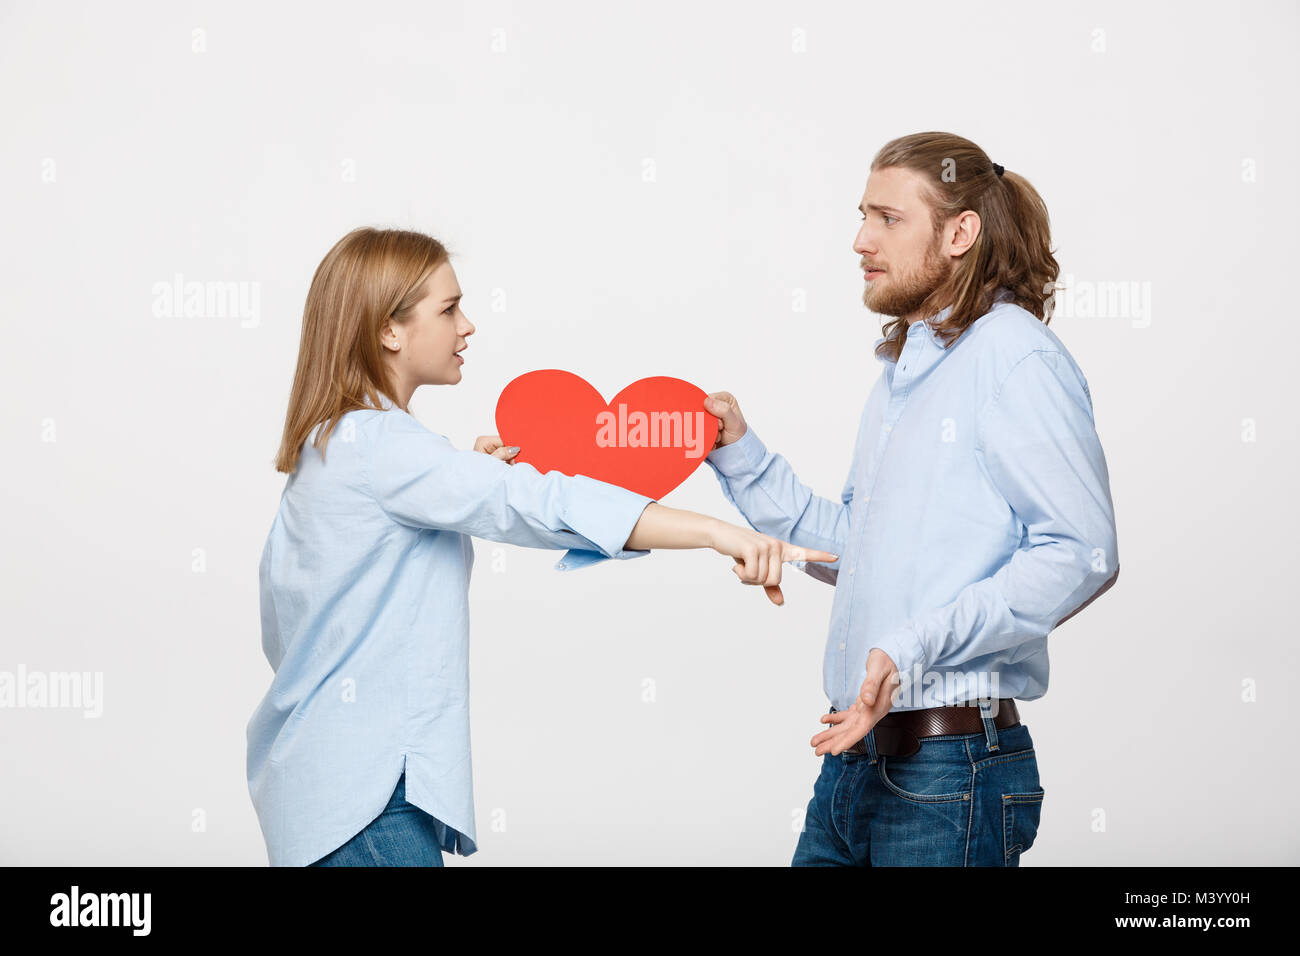 Couple holding heart shape paper with angry facial expression against grey. - Stock Image